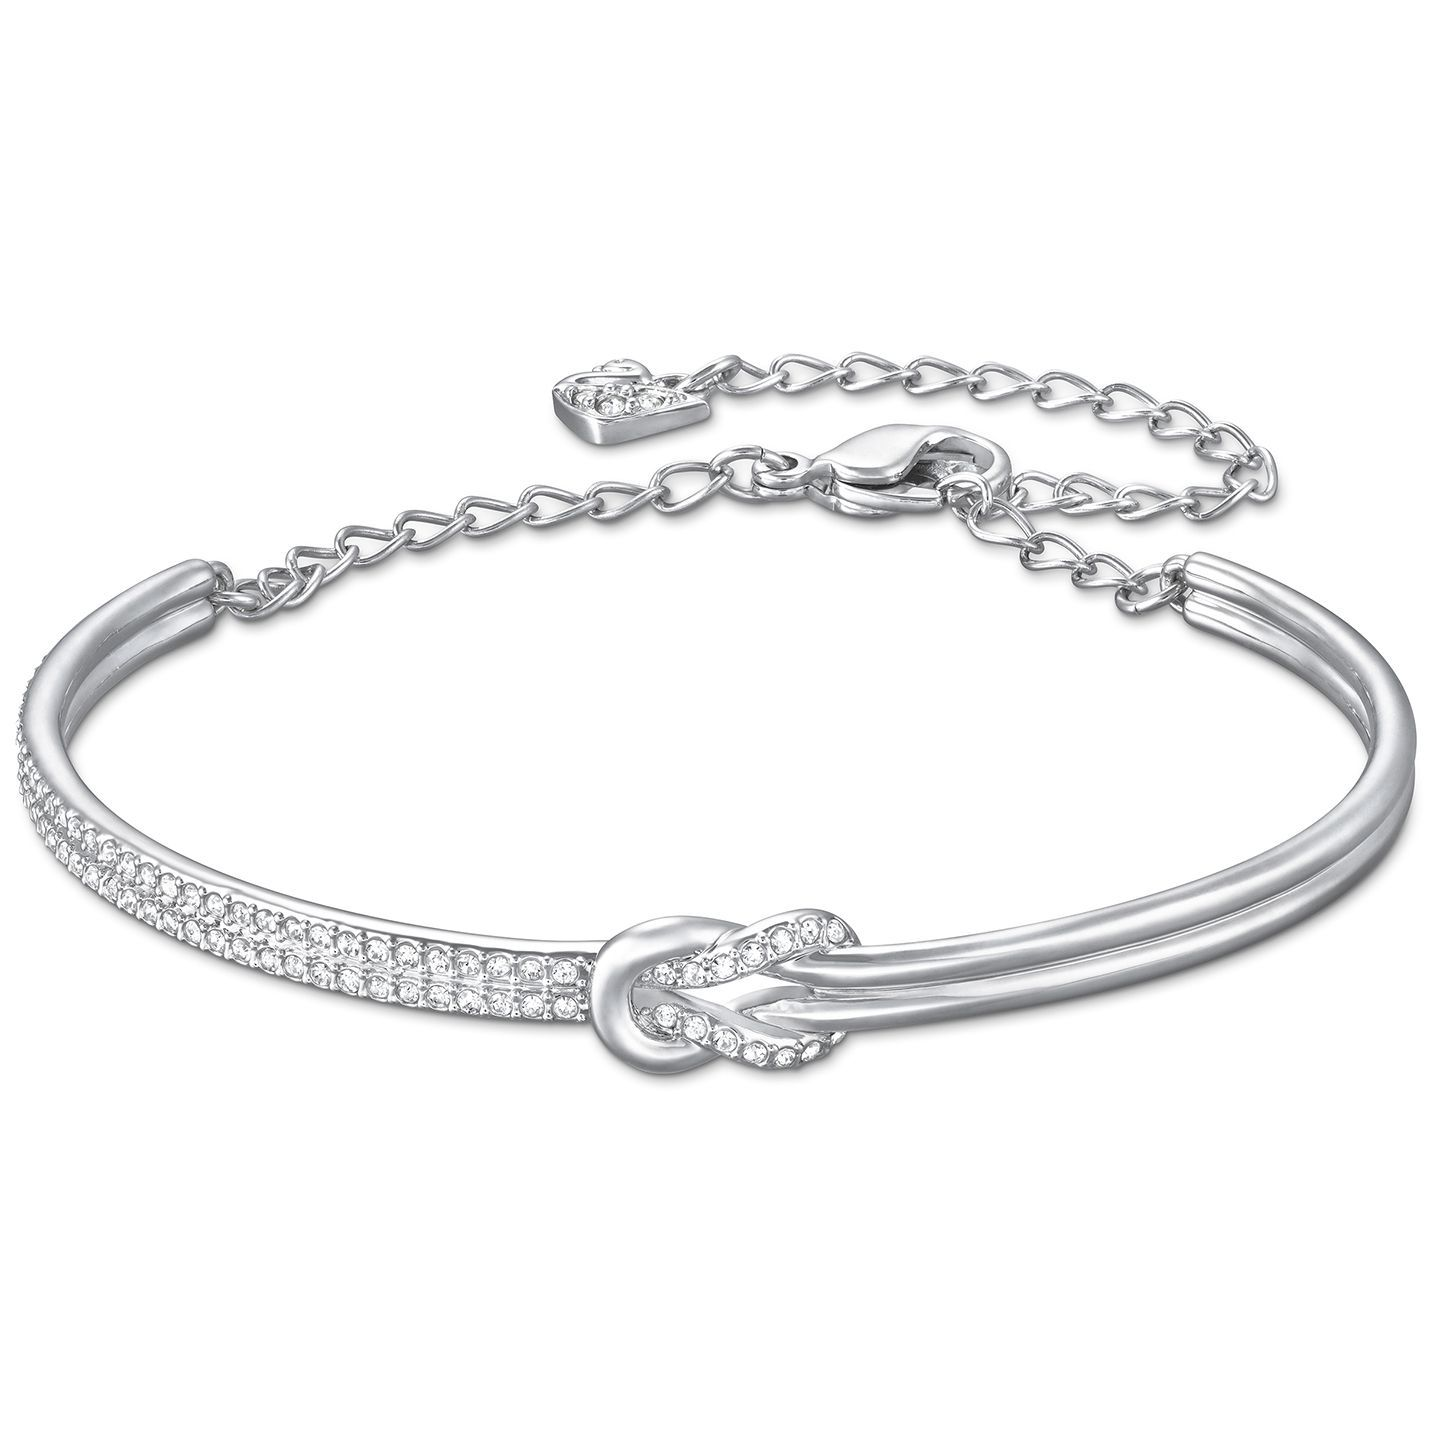 c29d139e1 Swarovski's Voile Bangle is both pretty and symbolic; featuring a knot  motif joining two halves, it makes the ideal wedding jewelry to represent  you tying ...